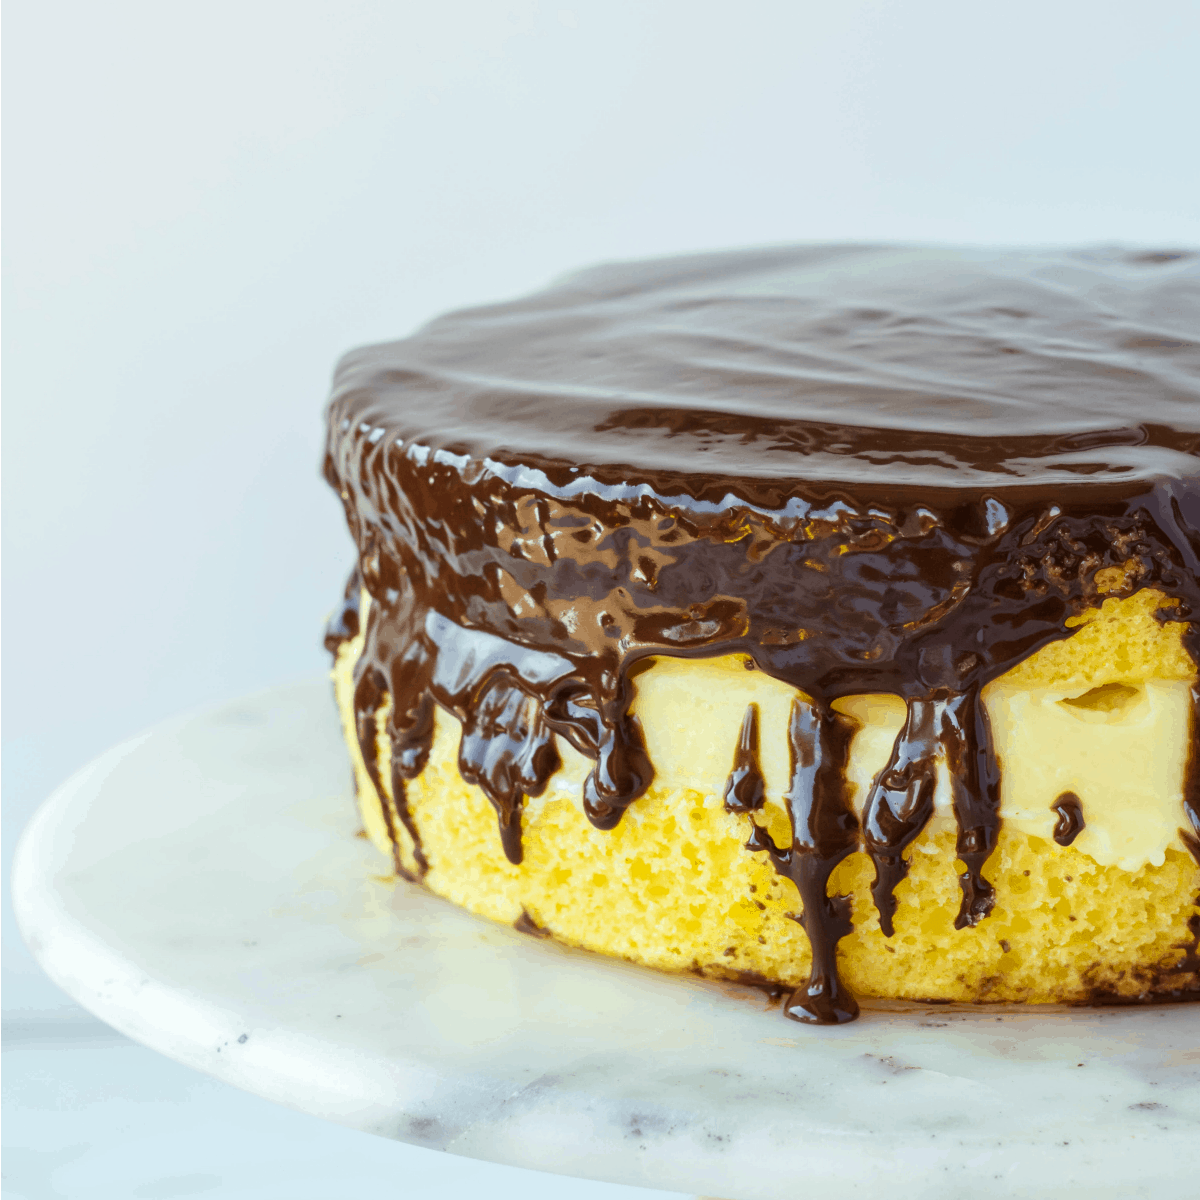 Boston Cream Pie on cake stand drizzled with ganache